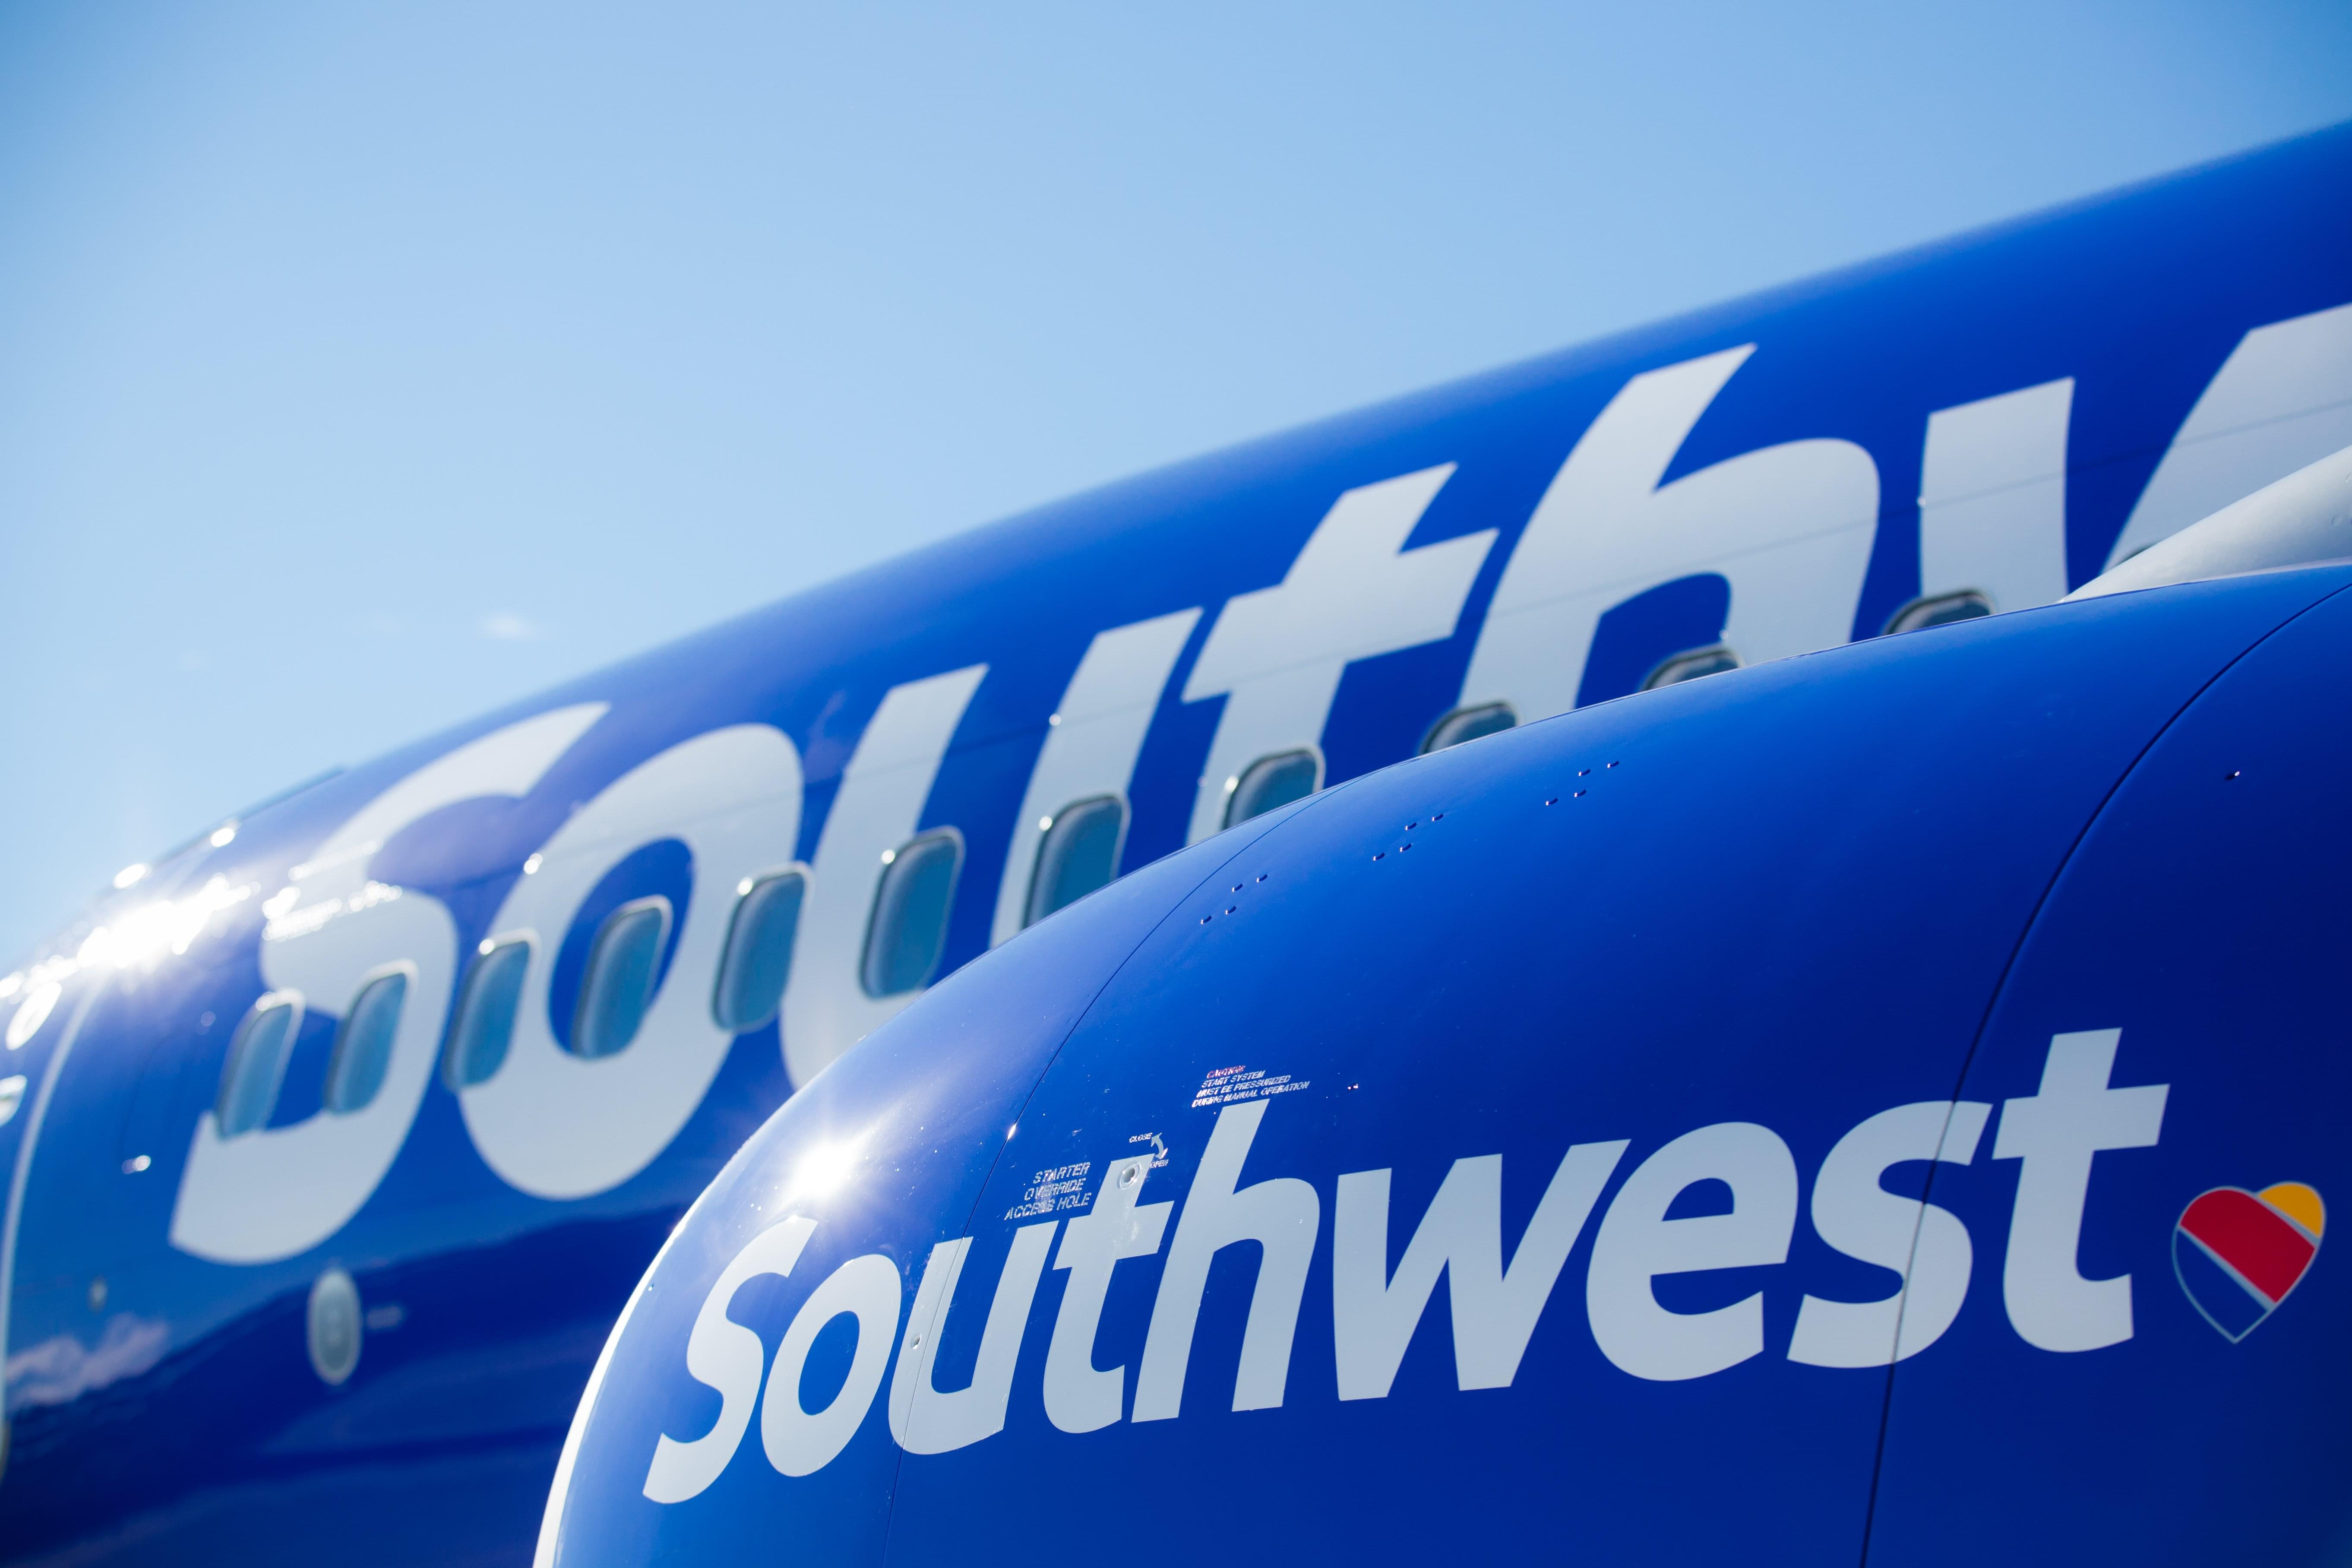 The Ernie Brown Show: Southwest Airlines, American May Have a Sliver of Hope This Holiday Season